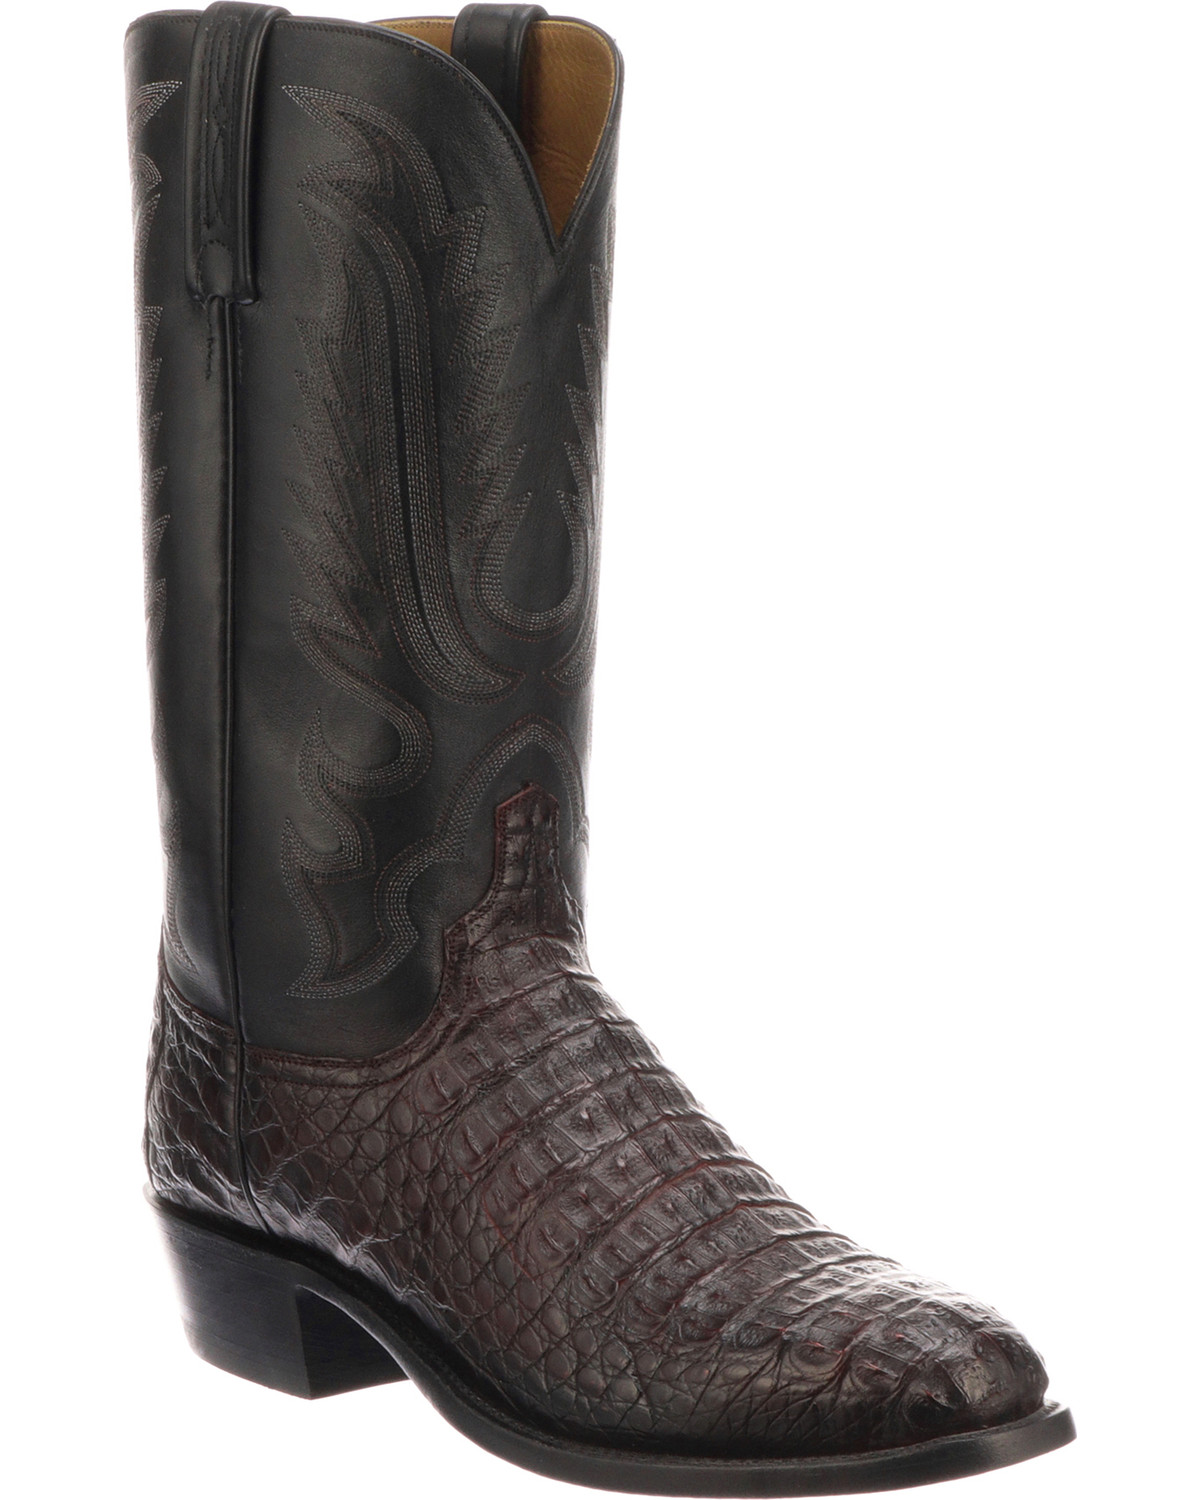 fb6c6ff924b Lucchese Men's Handmade Walter Black Cherry Caiman Western Boots - Snip Toe